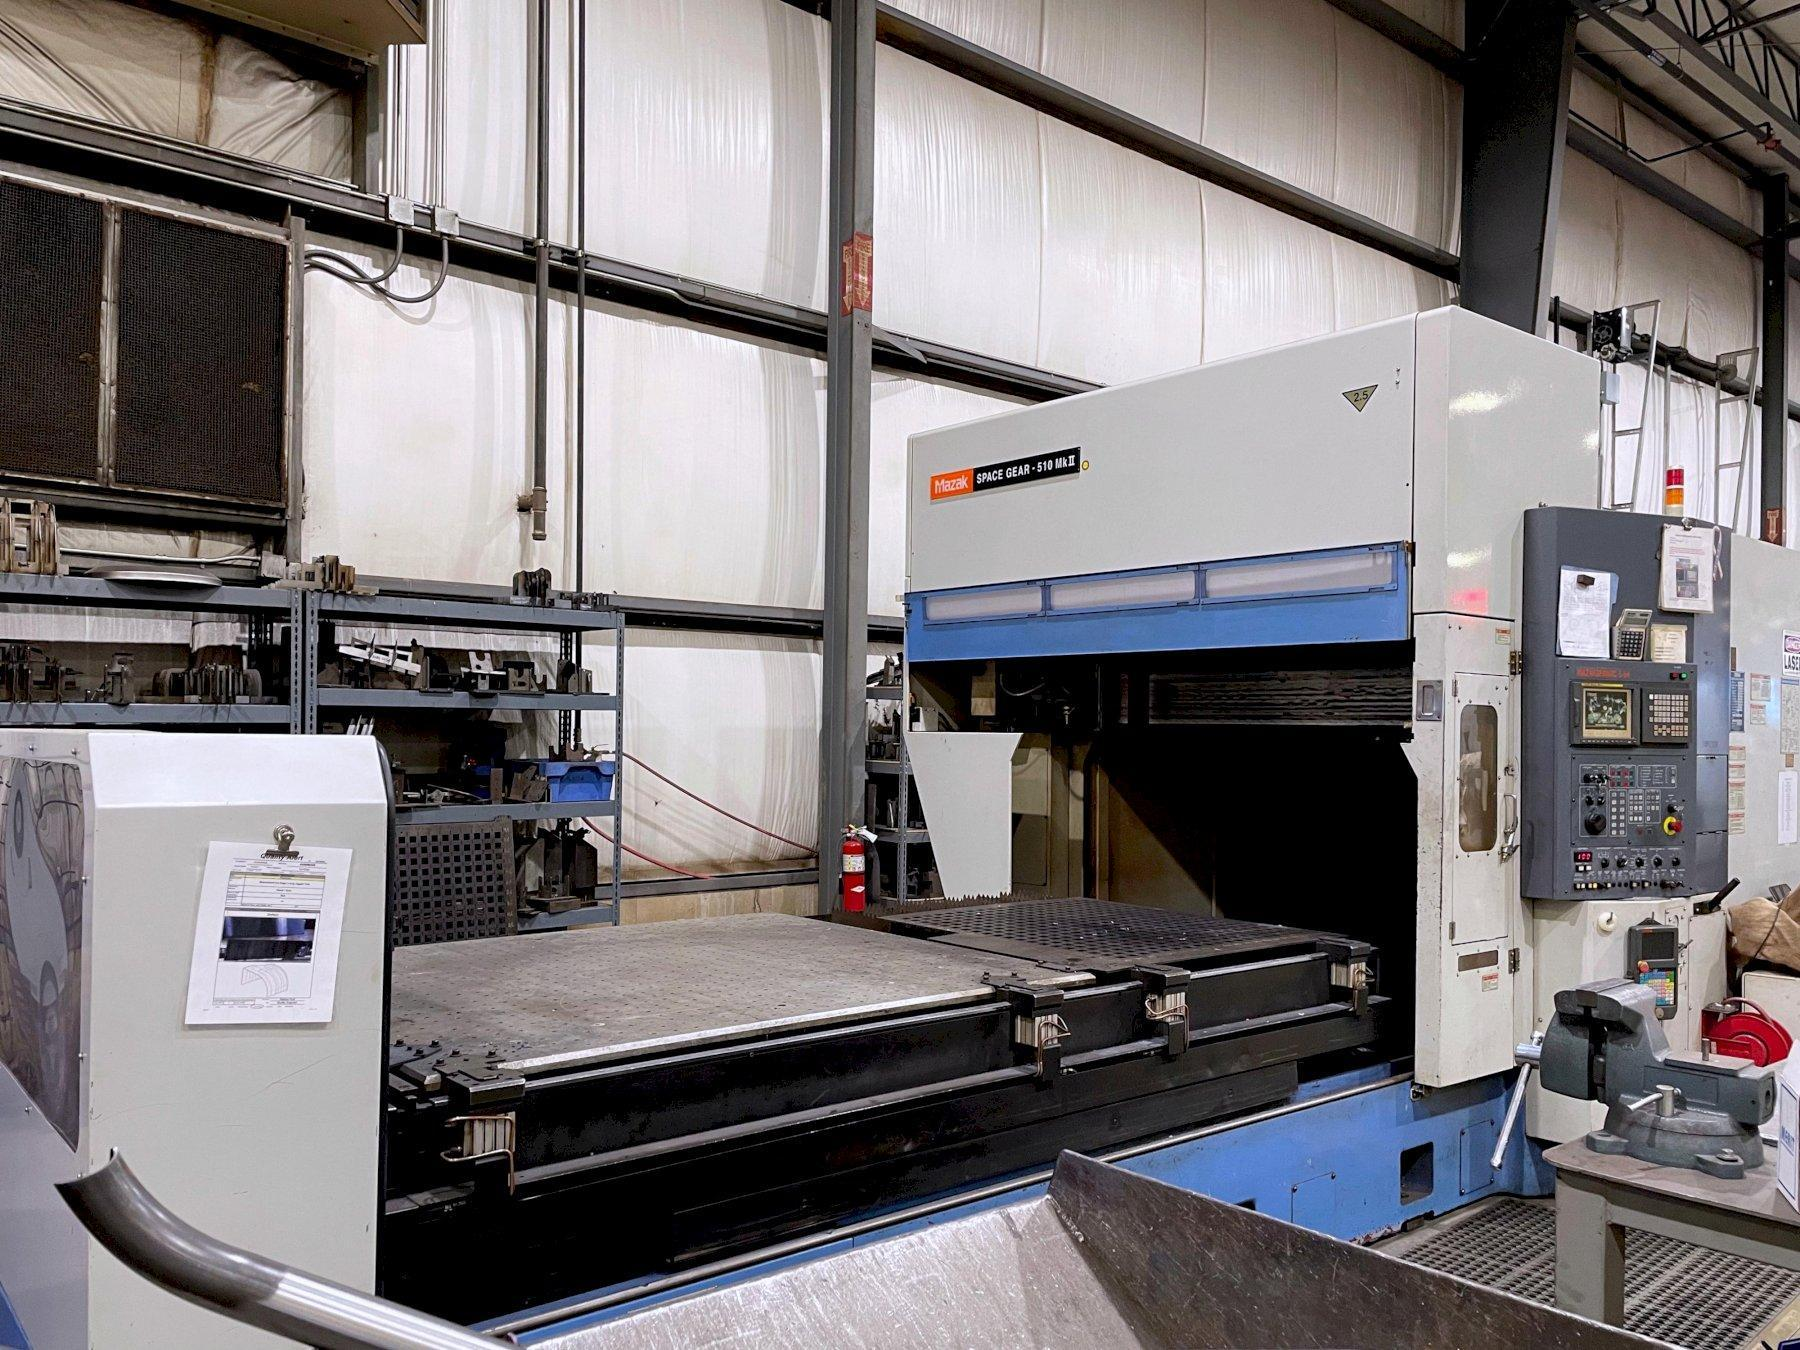 Mazak Space Gear 510 MKII (2003) 6 Axis w/Rotery Unit and Extended Z Axis CO2 Laser